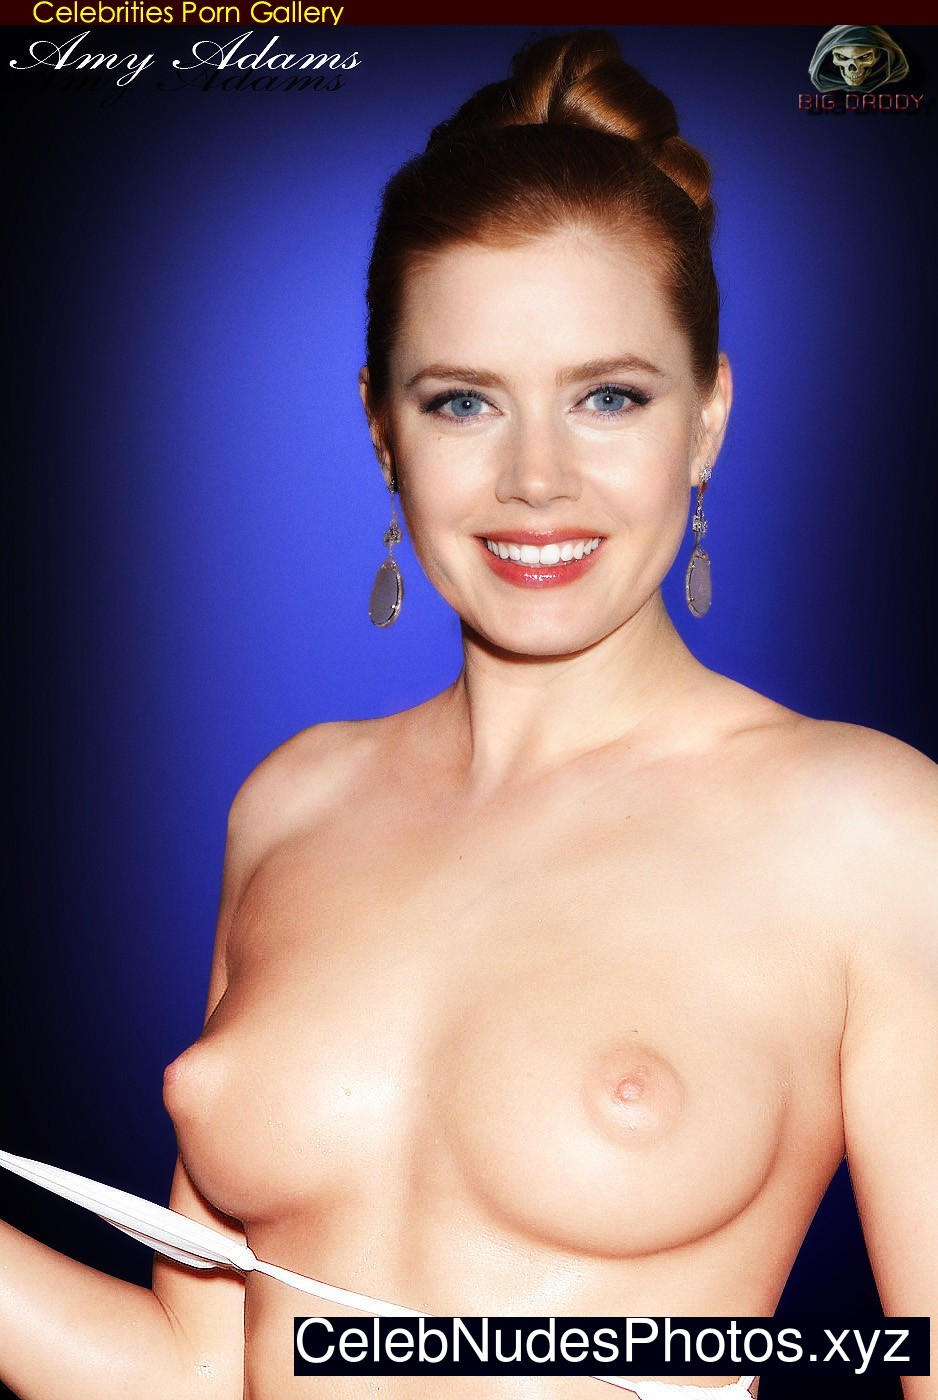 Amy Adams naked celebrity